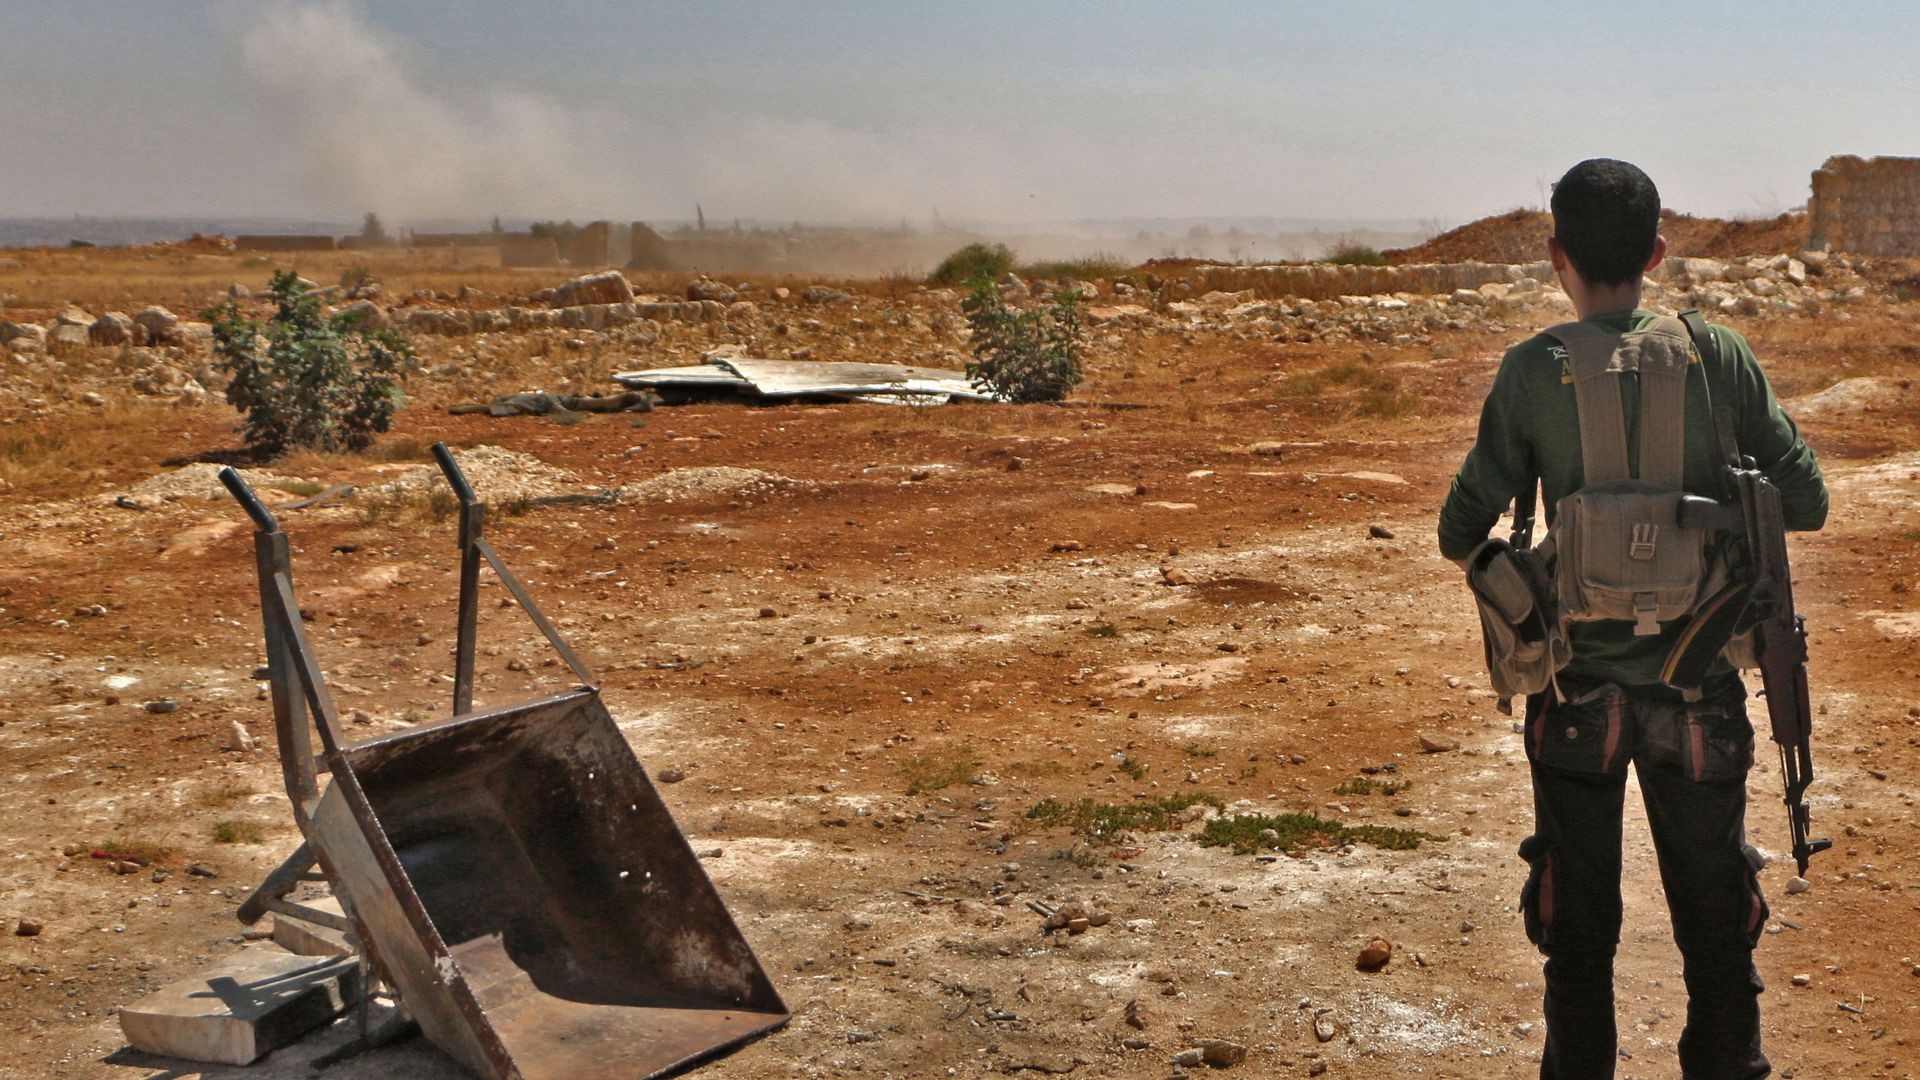 A Syrian rebel fighter holding a gun looks out onto empty land.